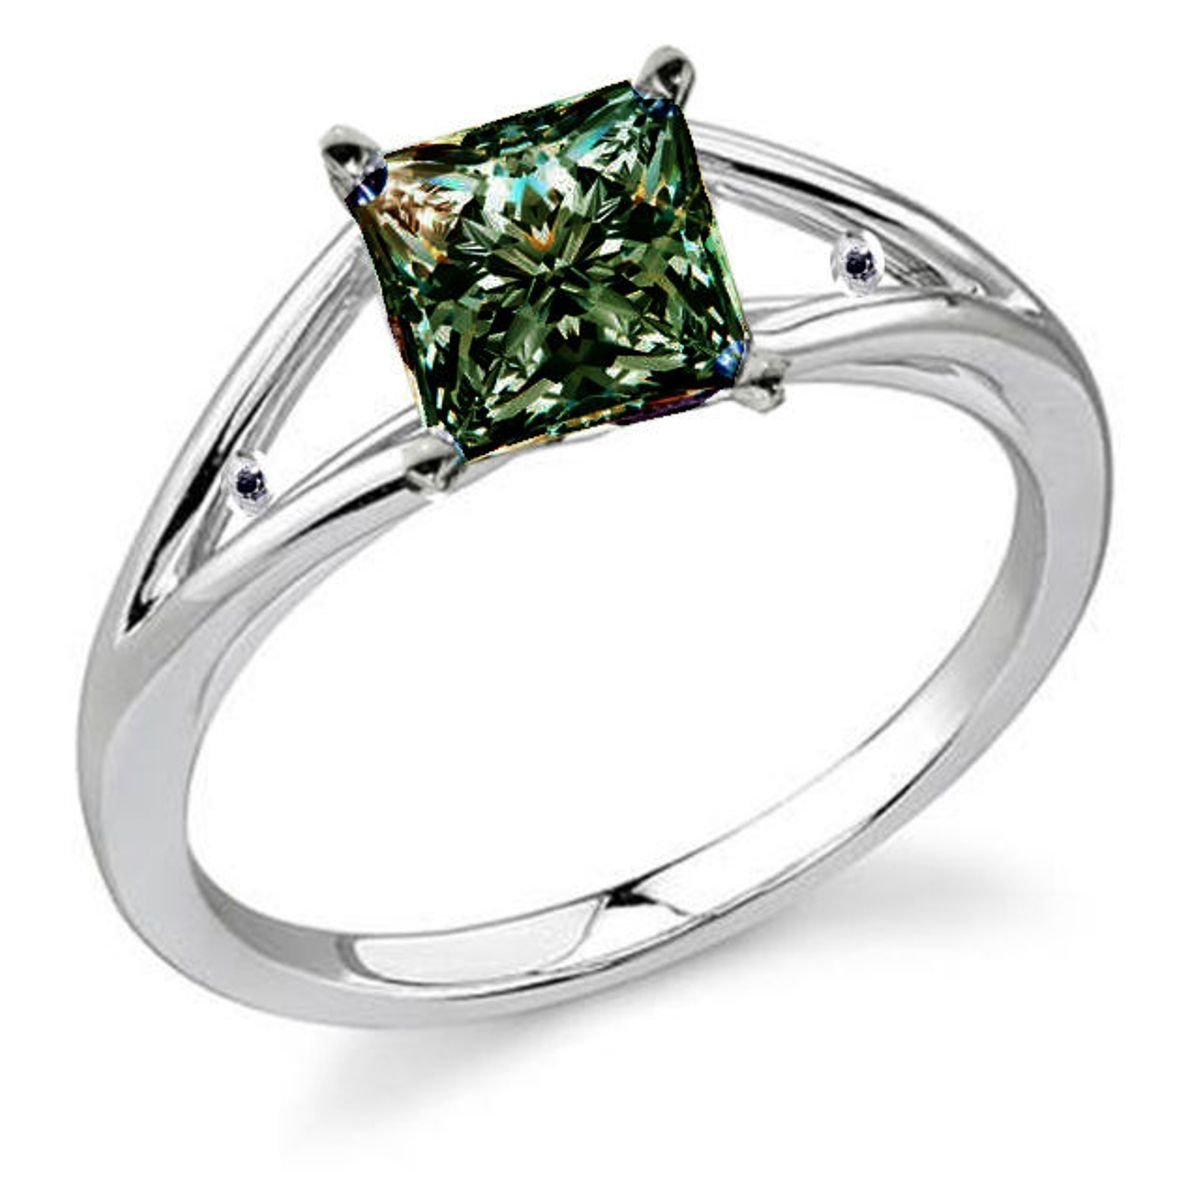 RINGJEWEL 3.65 ct VS1 Princess Moissanite Solitaire Engagement Silver Plated Ring Green Color Size 7 by RINGJEWEL (Image #1)